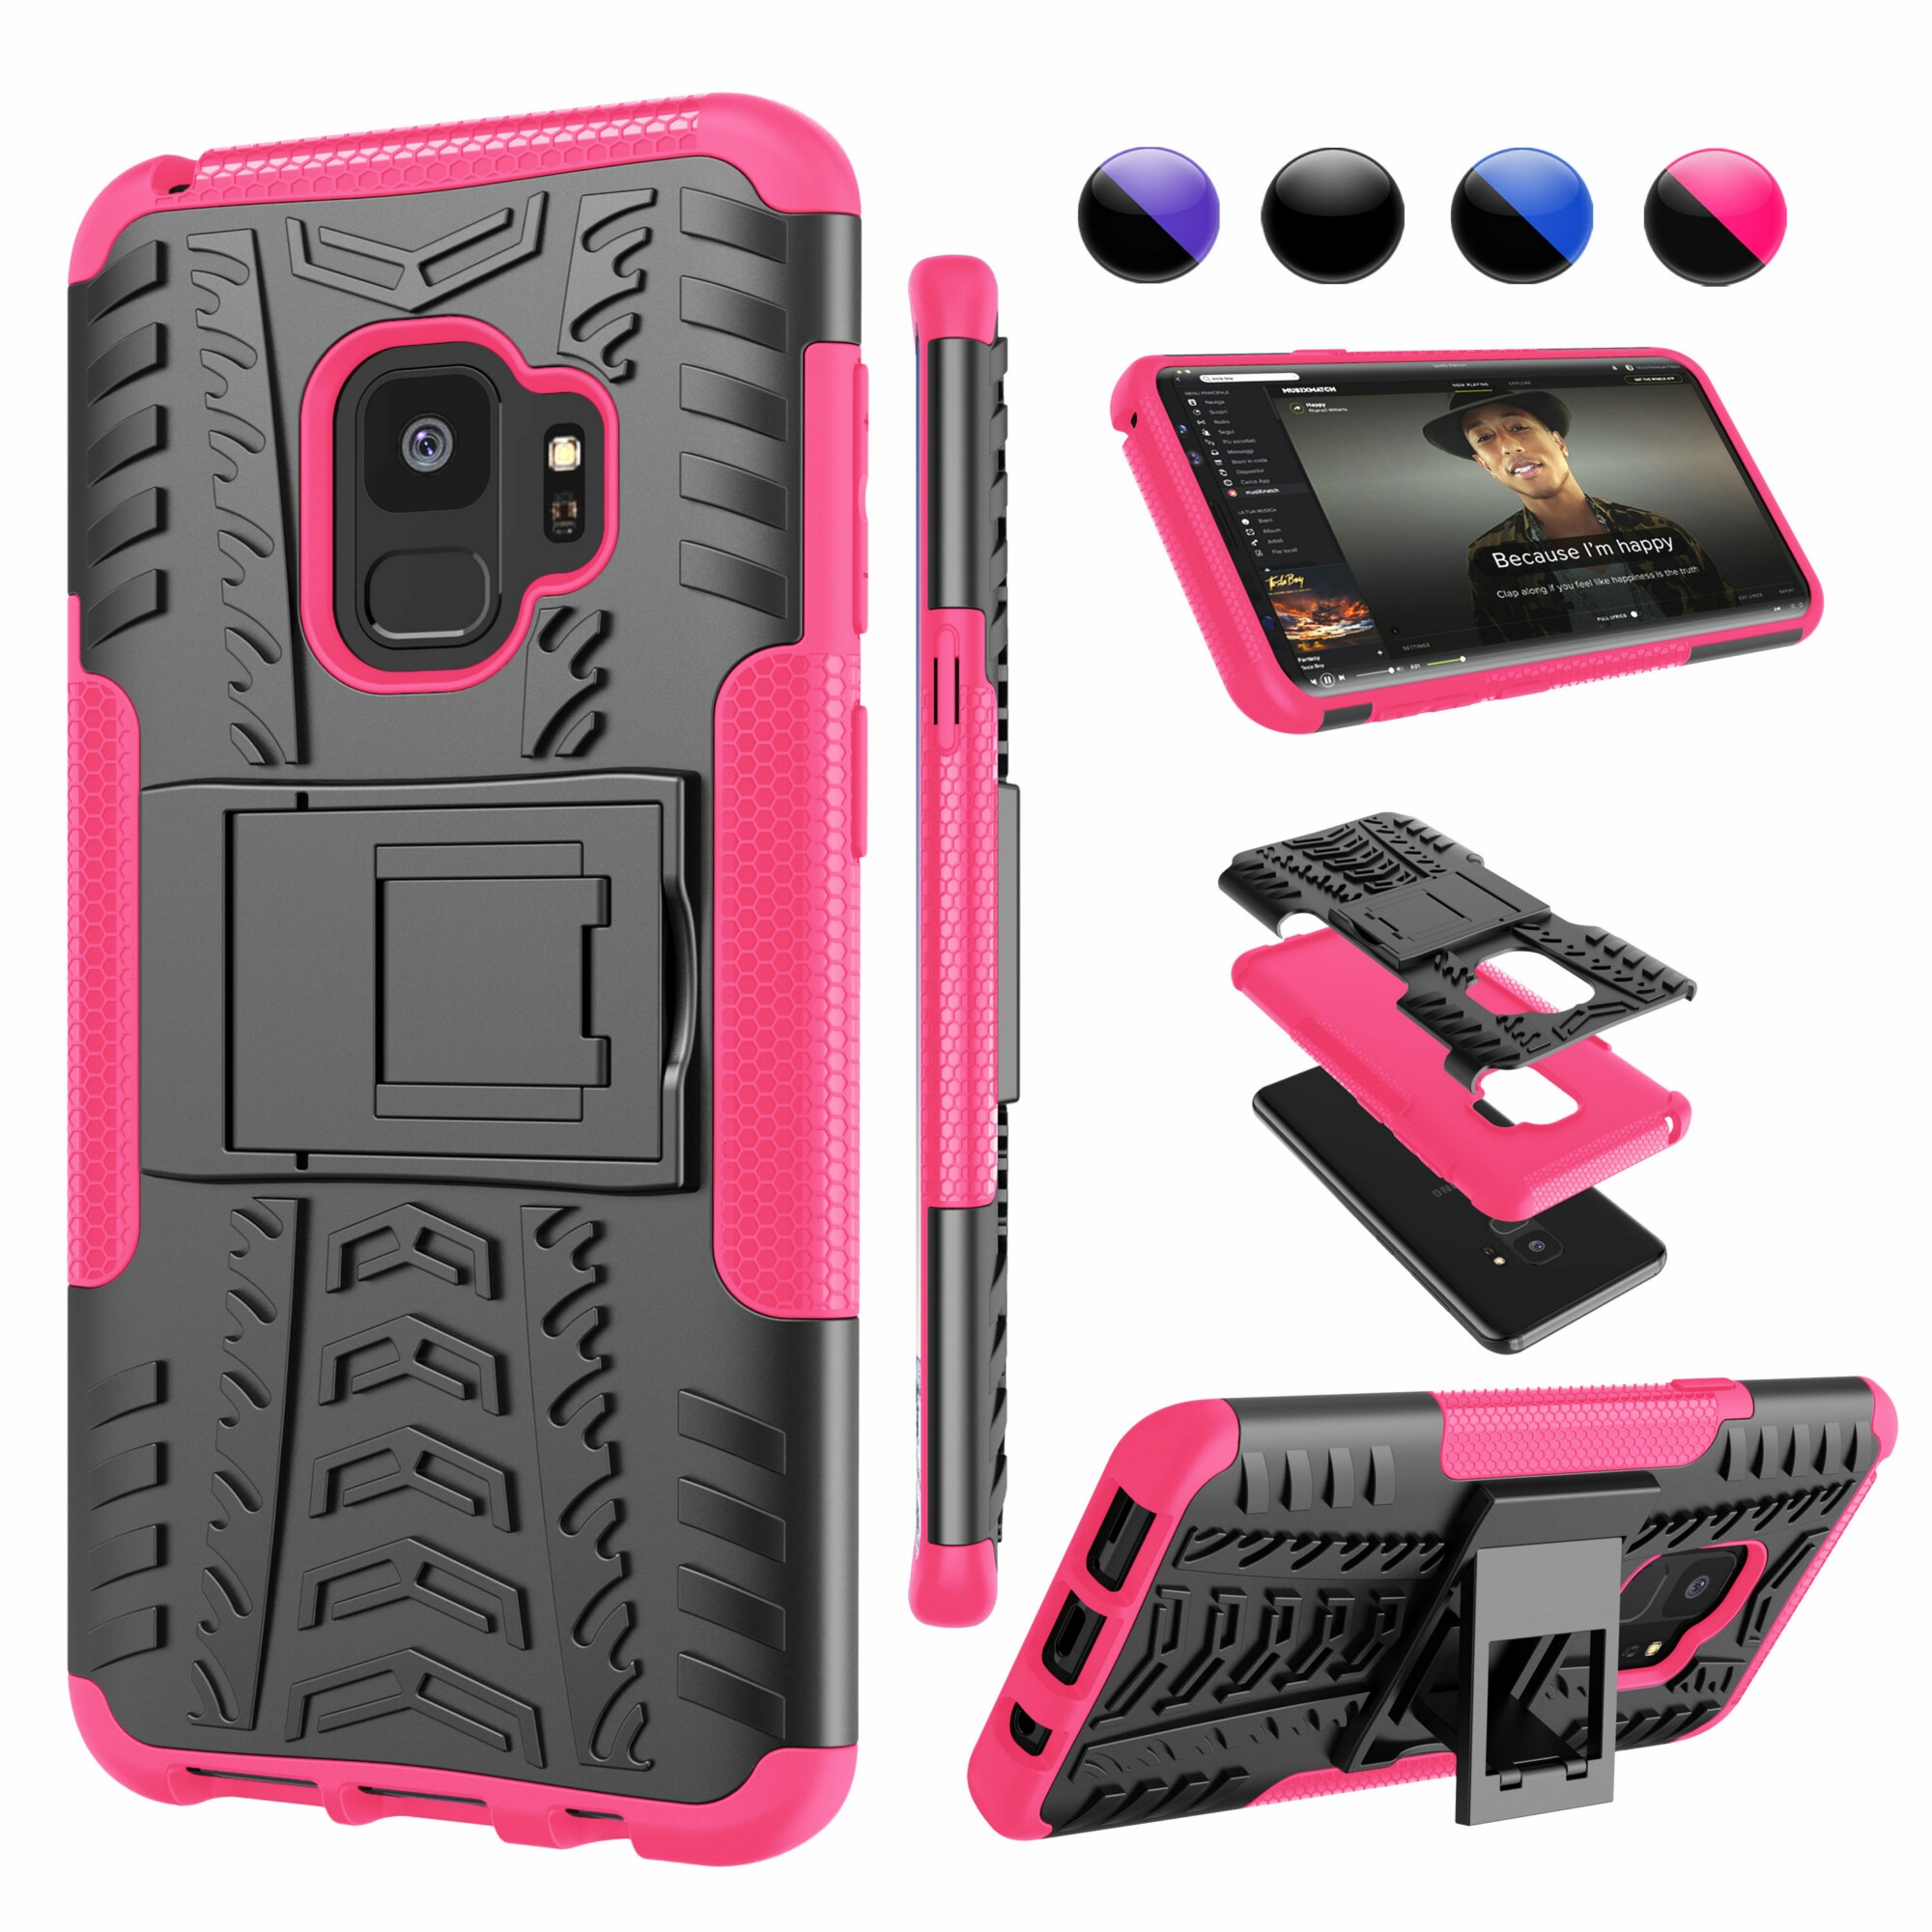 Samsung S9 Cover, Galaxy S9 Case with Stand, Galaxy S9 Cover, SM-G960 Cover, Njjex Hybrid [Kickstand][Non-slip] Full-body Rugged ShockProof Protection Case For Samsung Galaxy S9 -Hot Pink